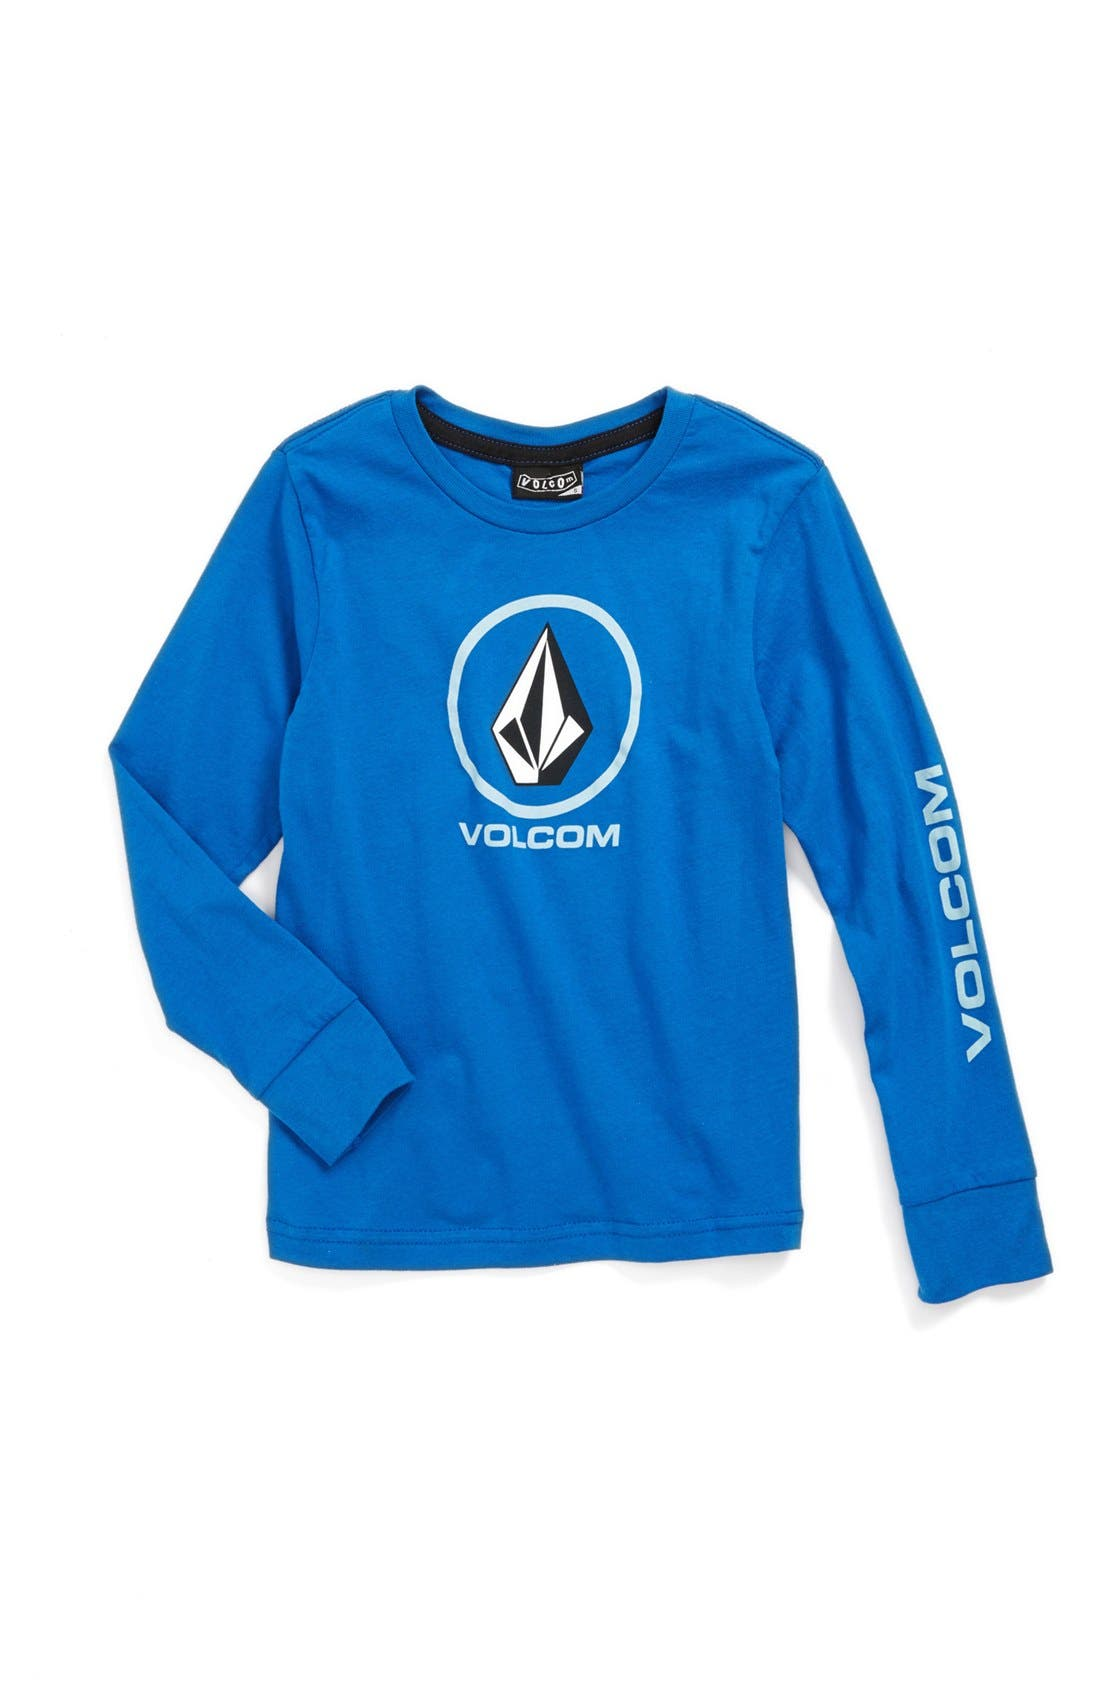 Main Image - Volcom 'Circle Staple' Long Sleeve T-Shirt (Big Boys)